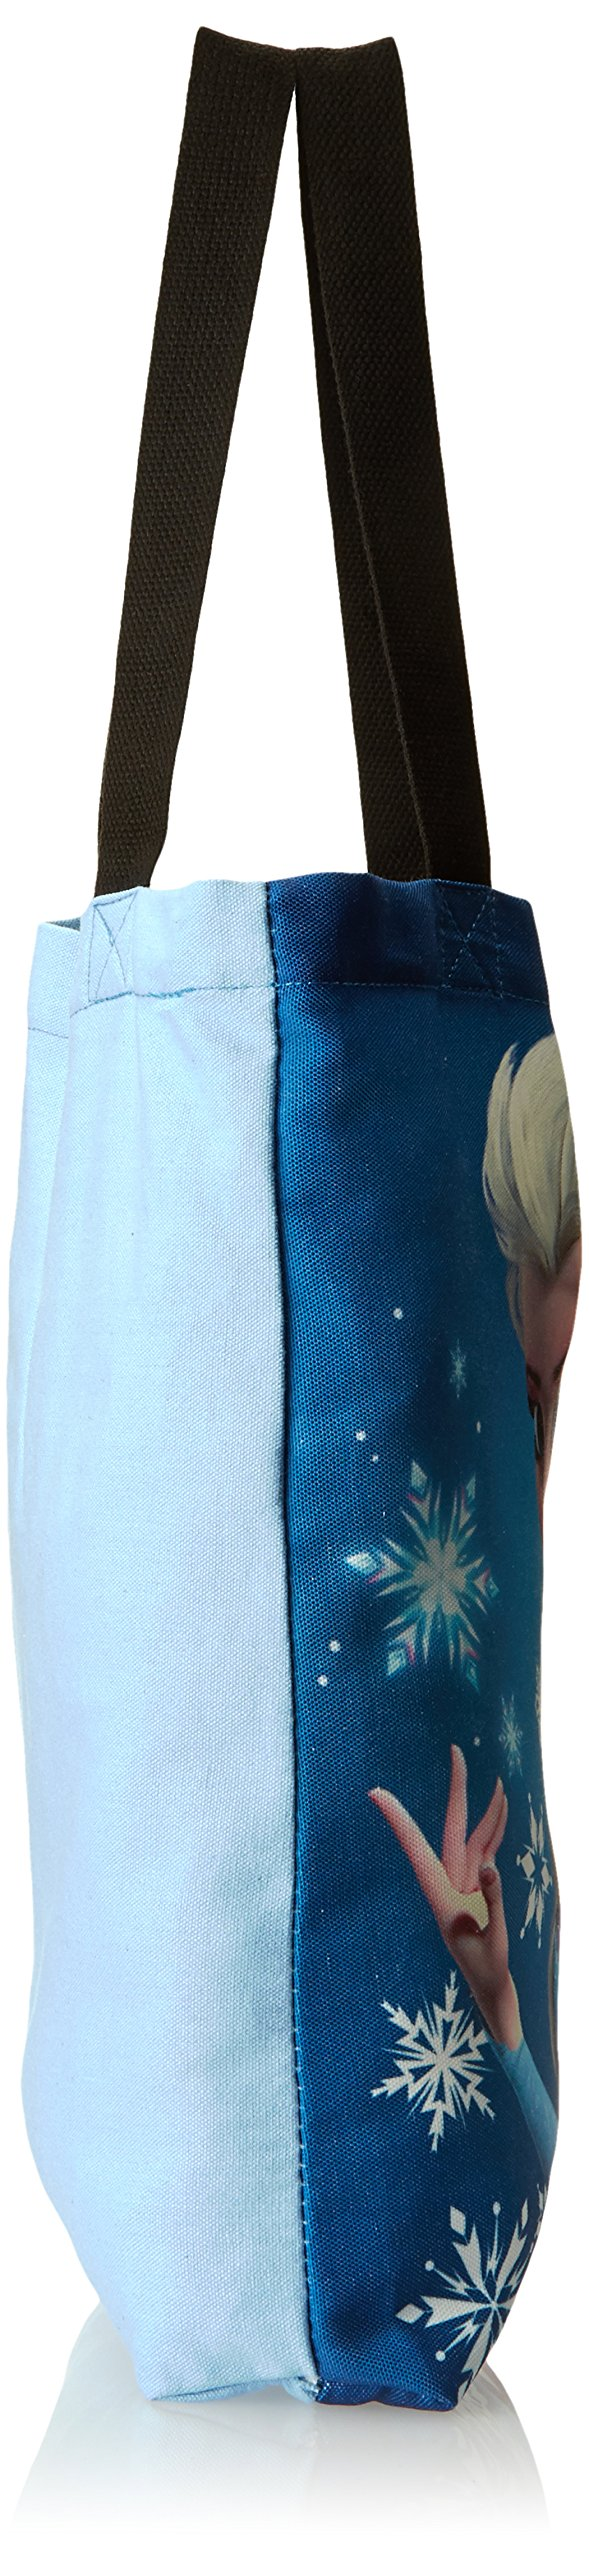 Concept One Handbags Frozen Anna and Elsa Sublimation Print Shoulder Bag, Royal, One Size by Concept One Handbags (Image #3)